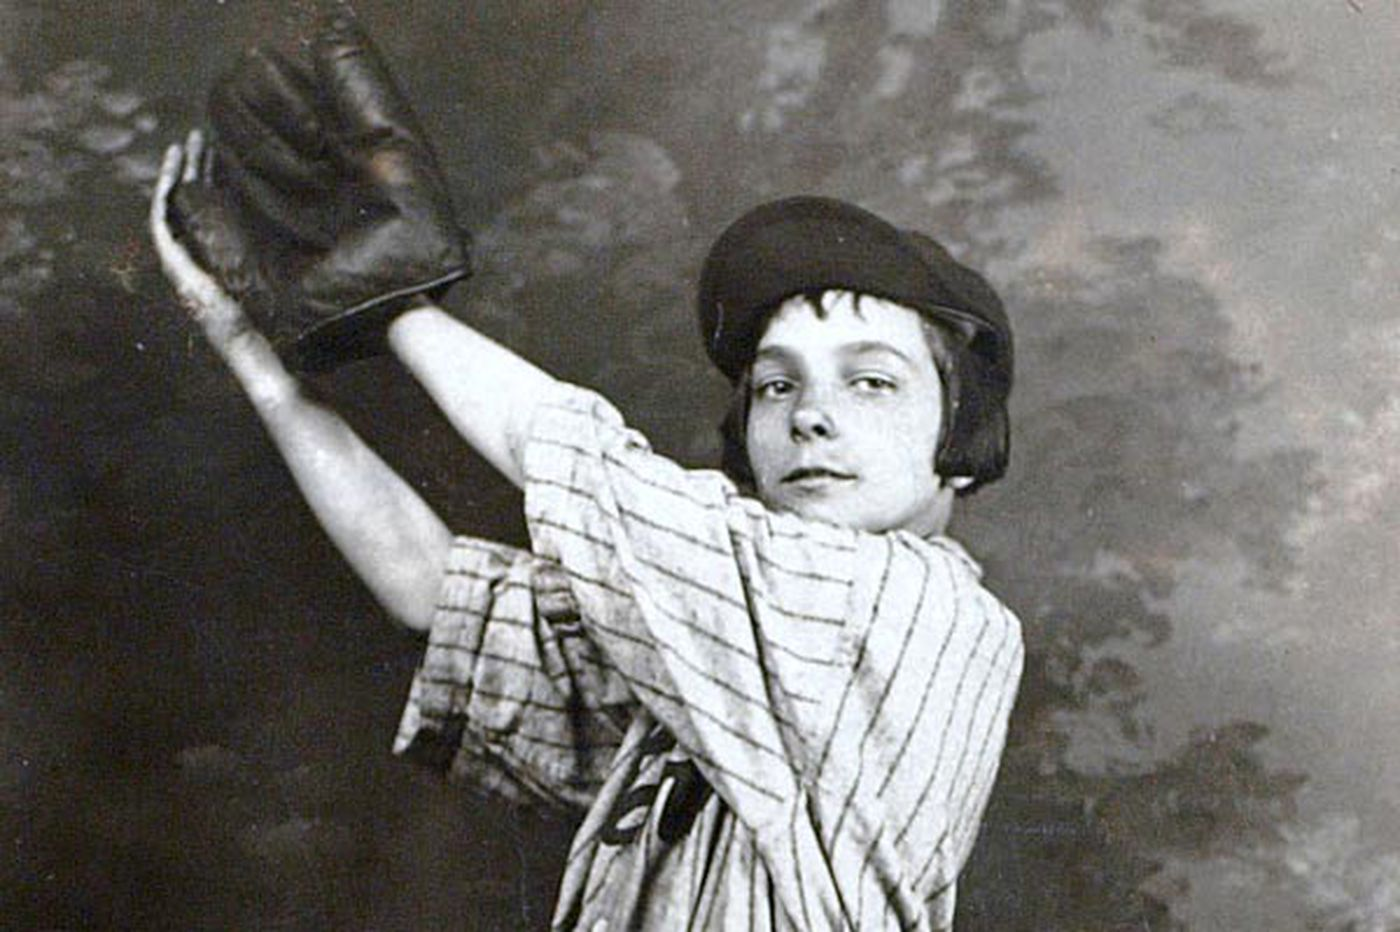 Long before Mo'ne Davis, another female baseball phenom